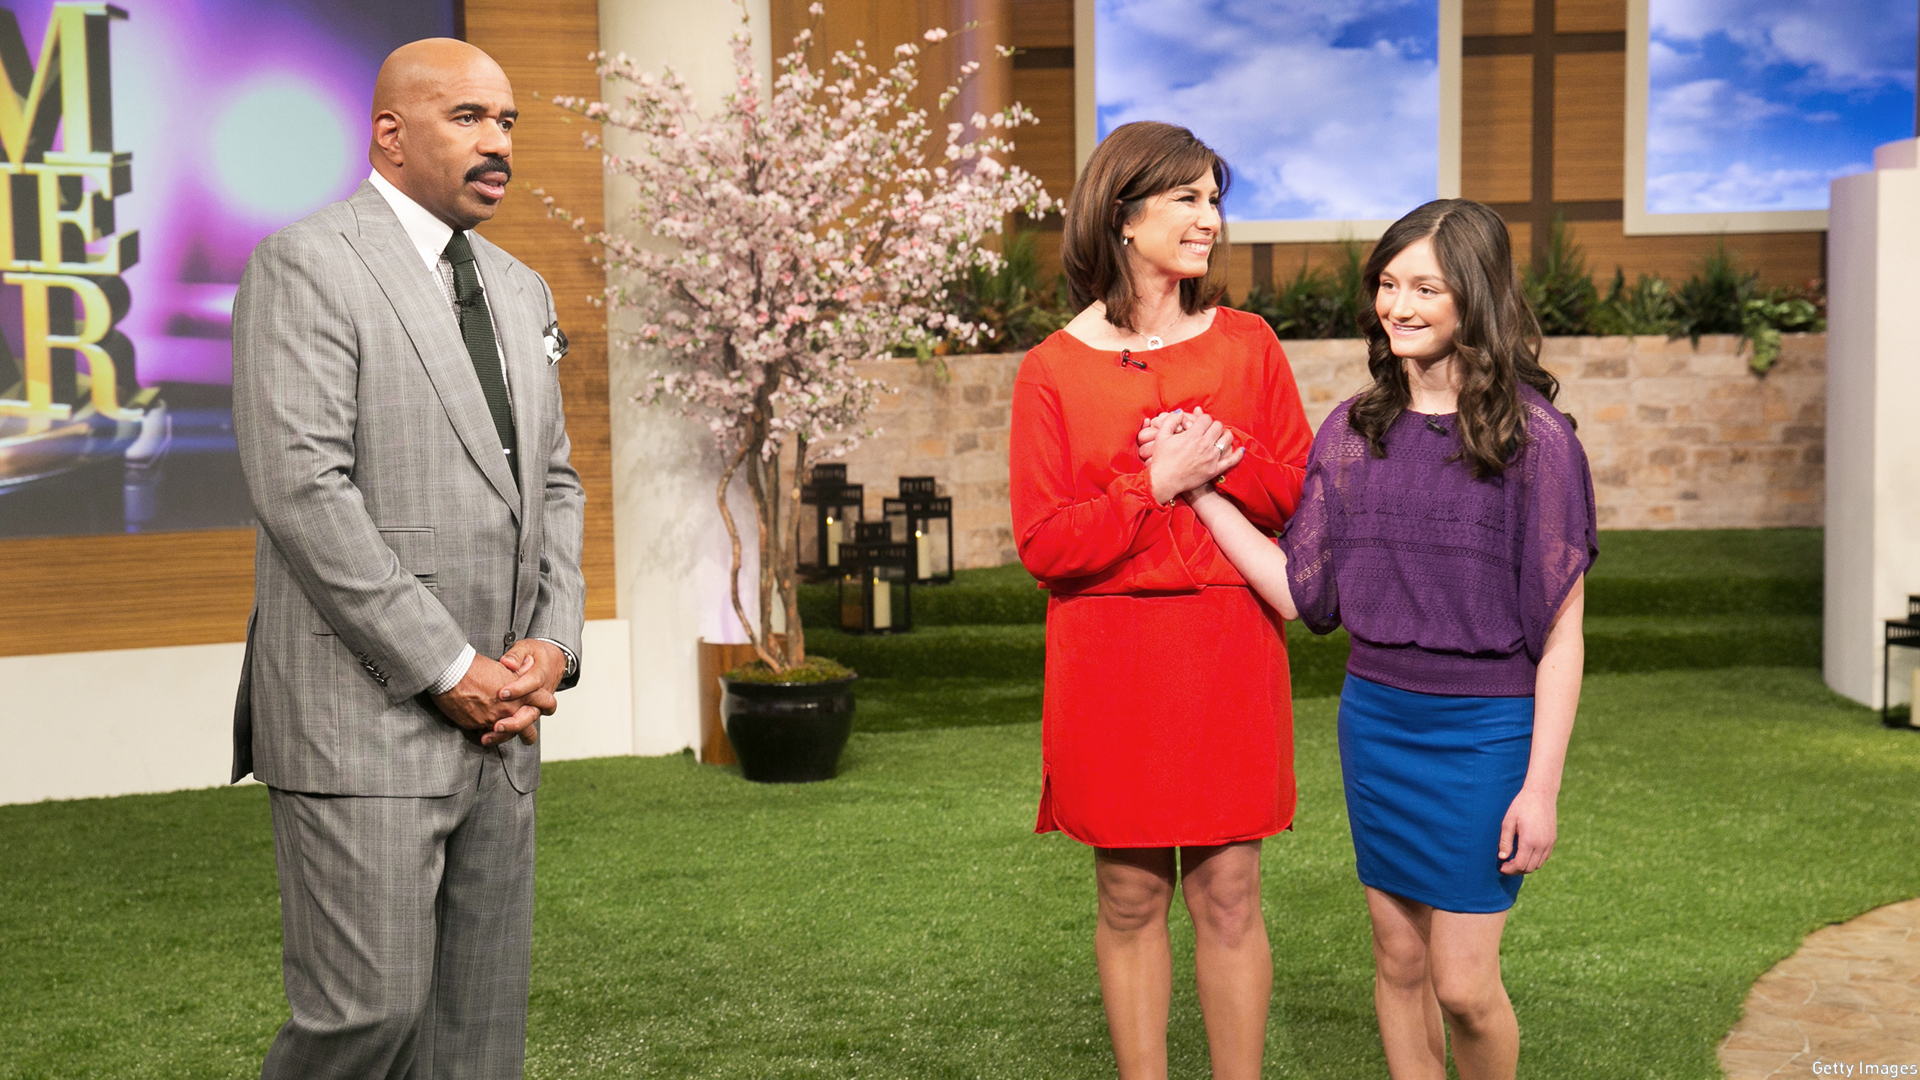 Rhonda Carlsen and daughter Lauren on The Steve Harvey Show in 2014 (Photo: Getty Images)